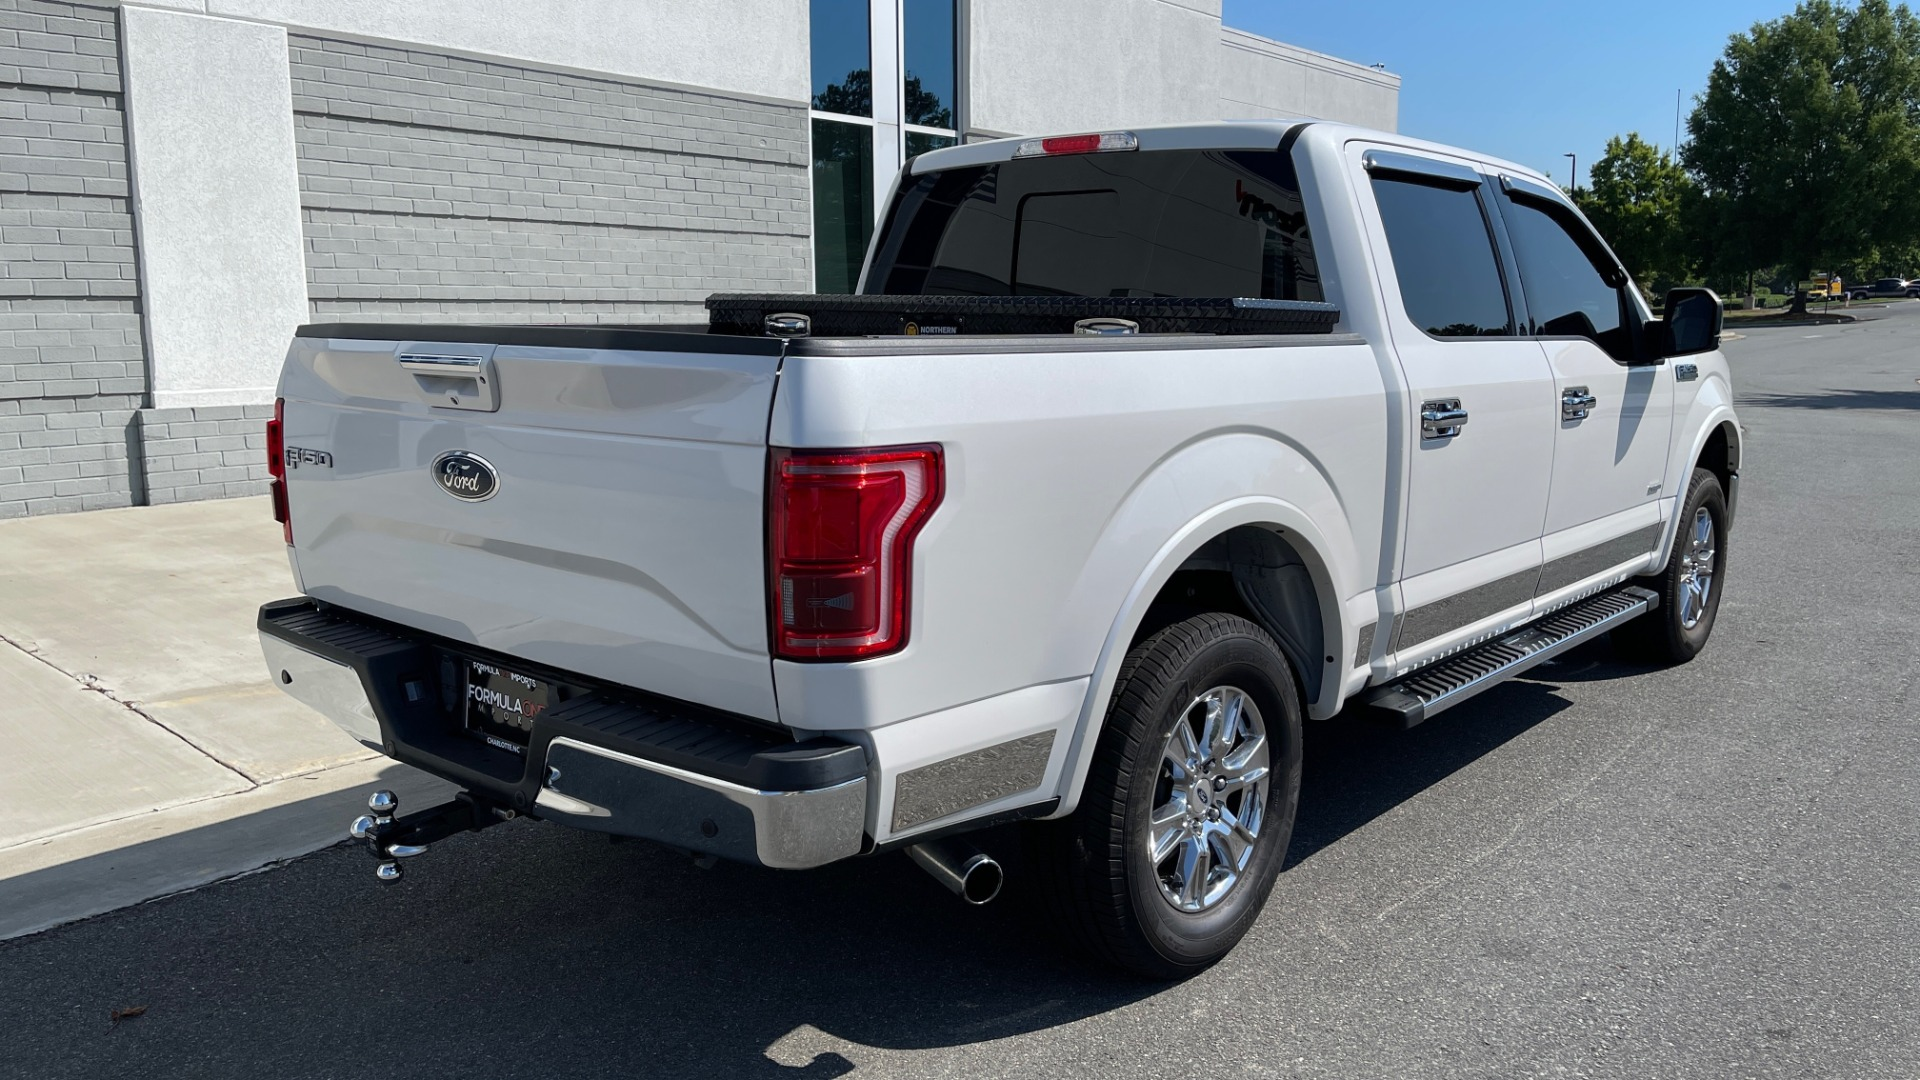 Used 2016 Ford F-150 LARIAT 4X4 / 3.5L V6 / 6-SPD AUTO / BLIS / SONY / NAV / REARVIEW for sale $37,500 at Formula Imports in Charlotte NC 28227 2